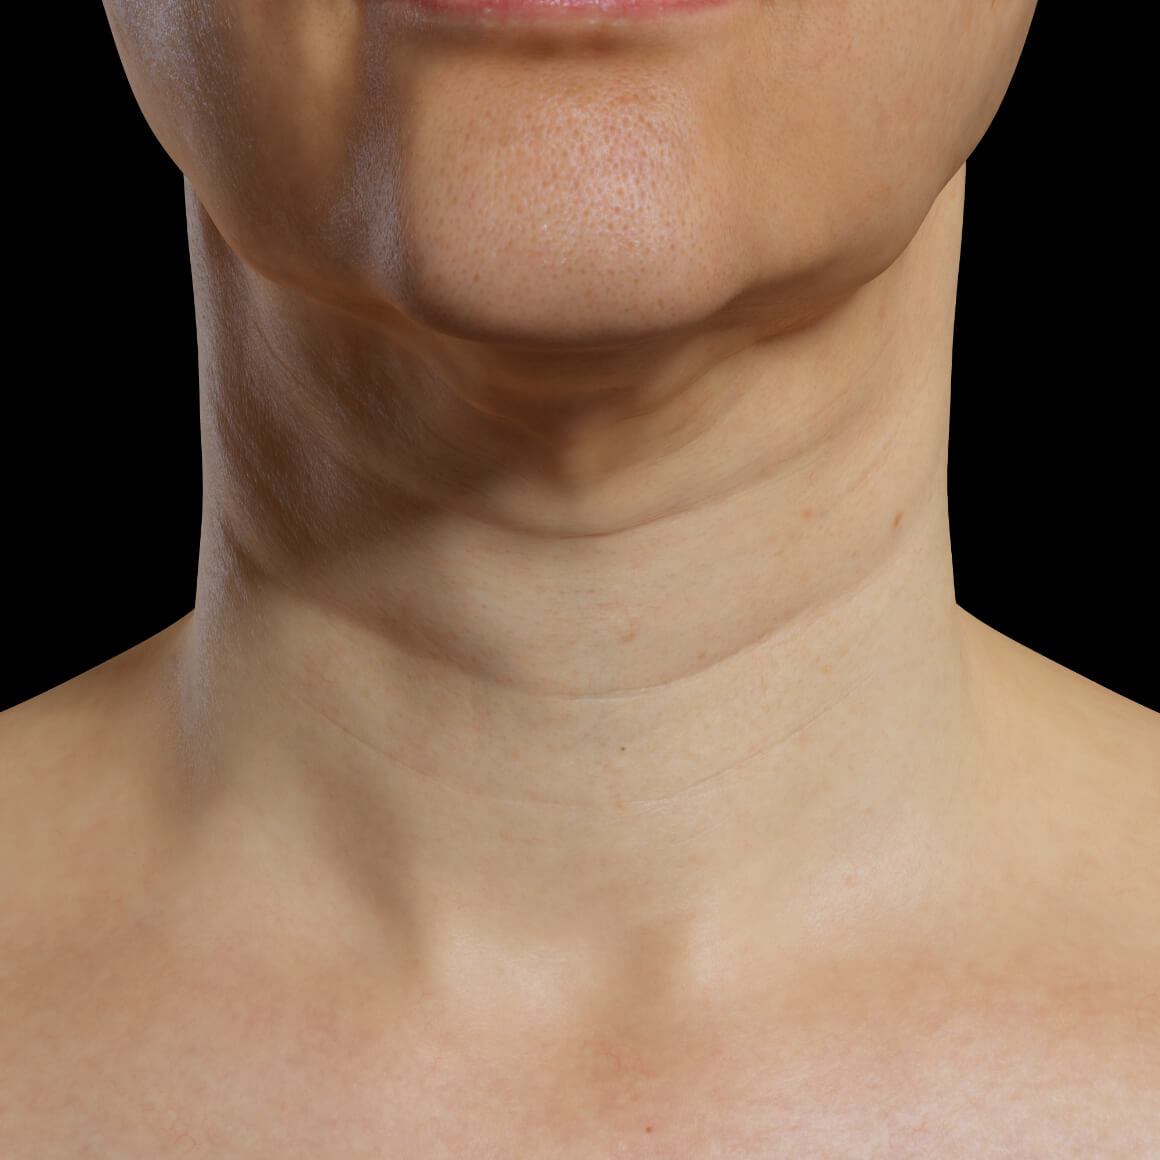 Female patient from Clinique Chloé facing front with wrinkles and sagging skin in the neck area